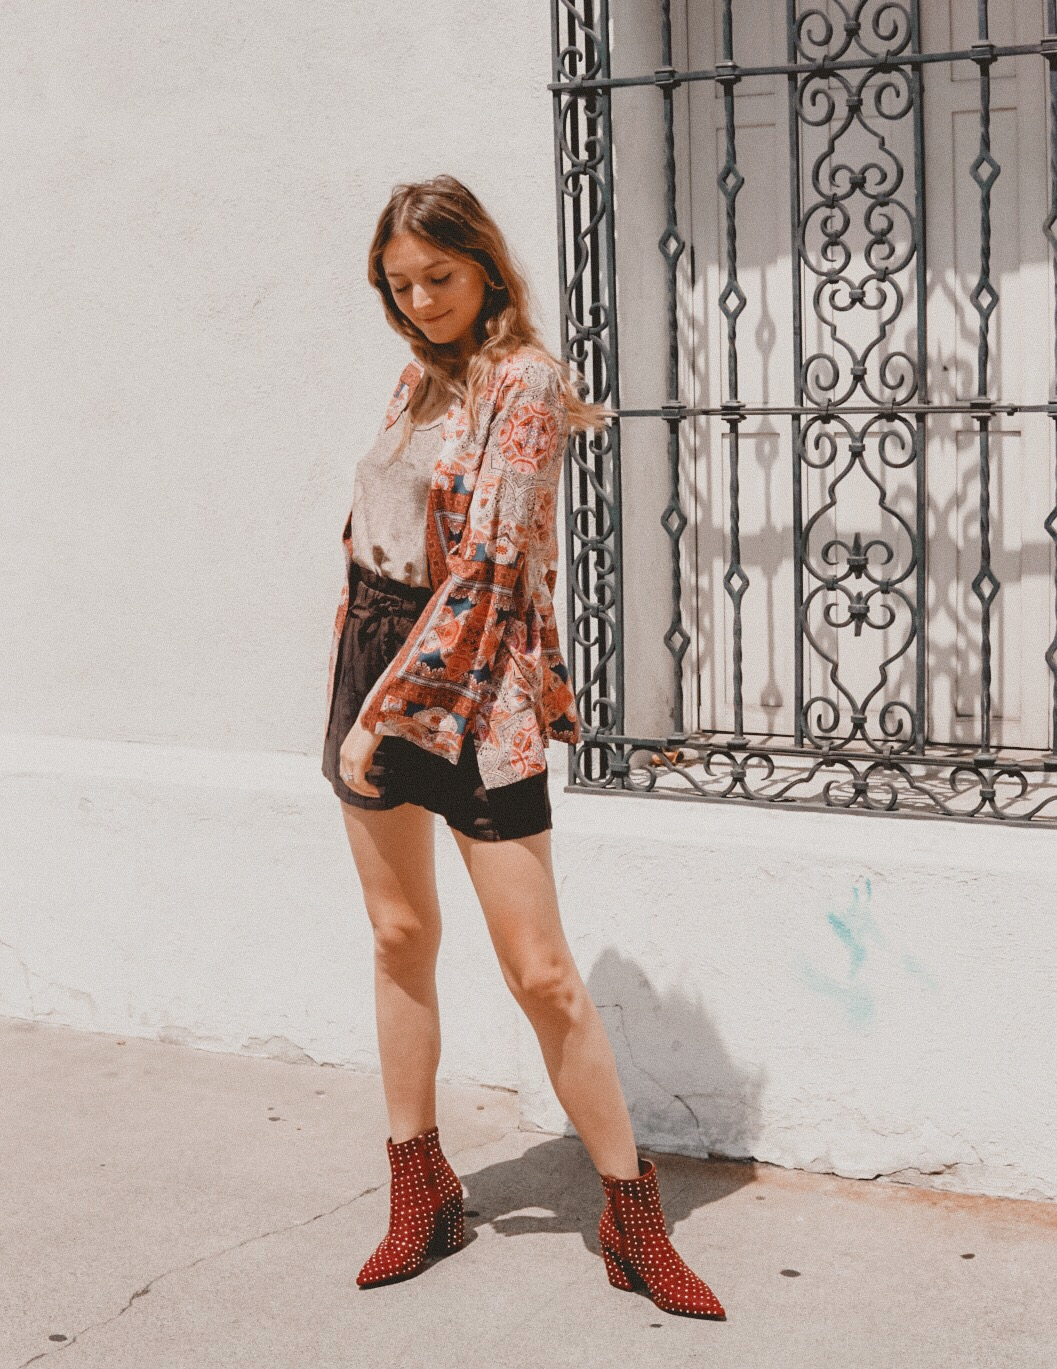 How to Start Dressing for Fall While It's Still Hot Out